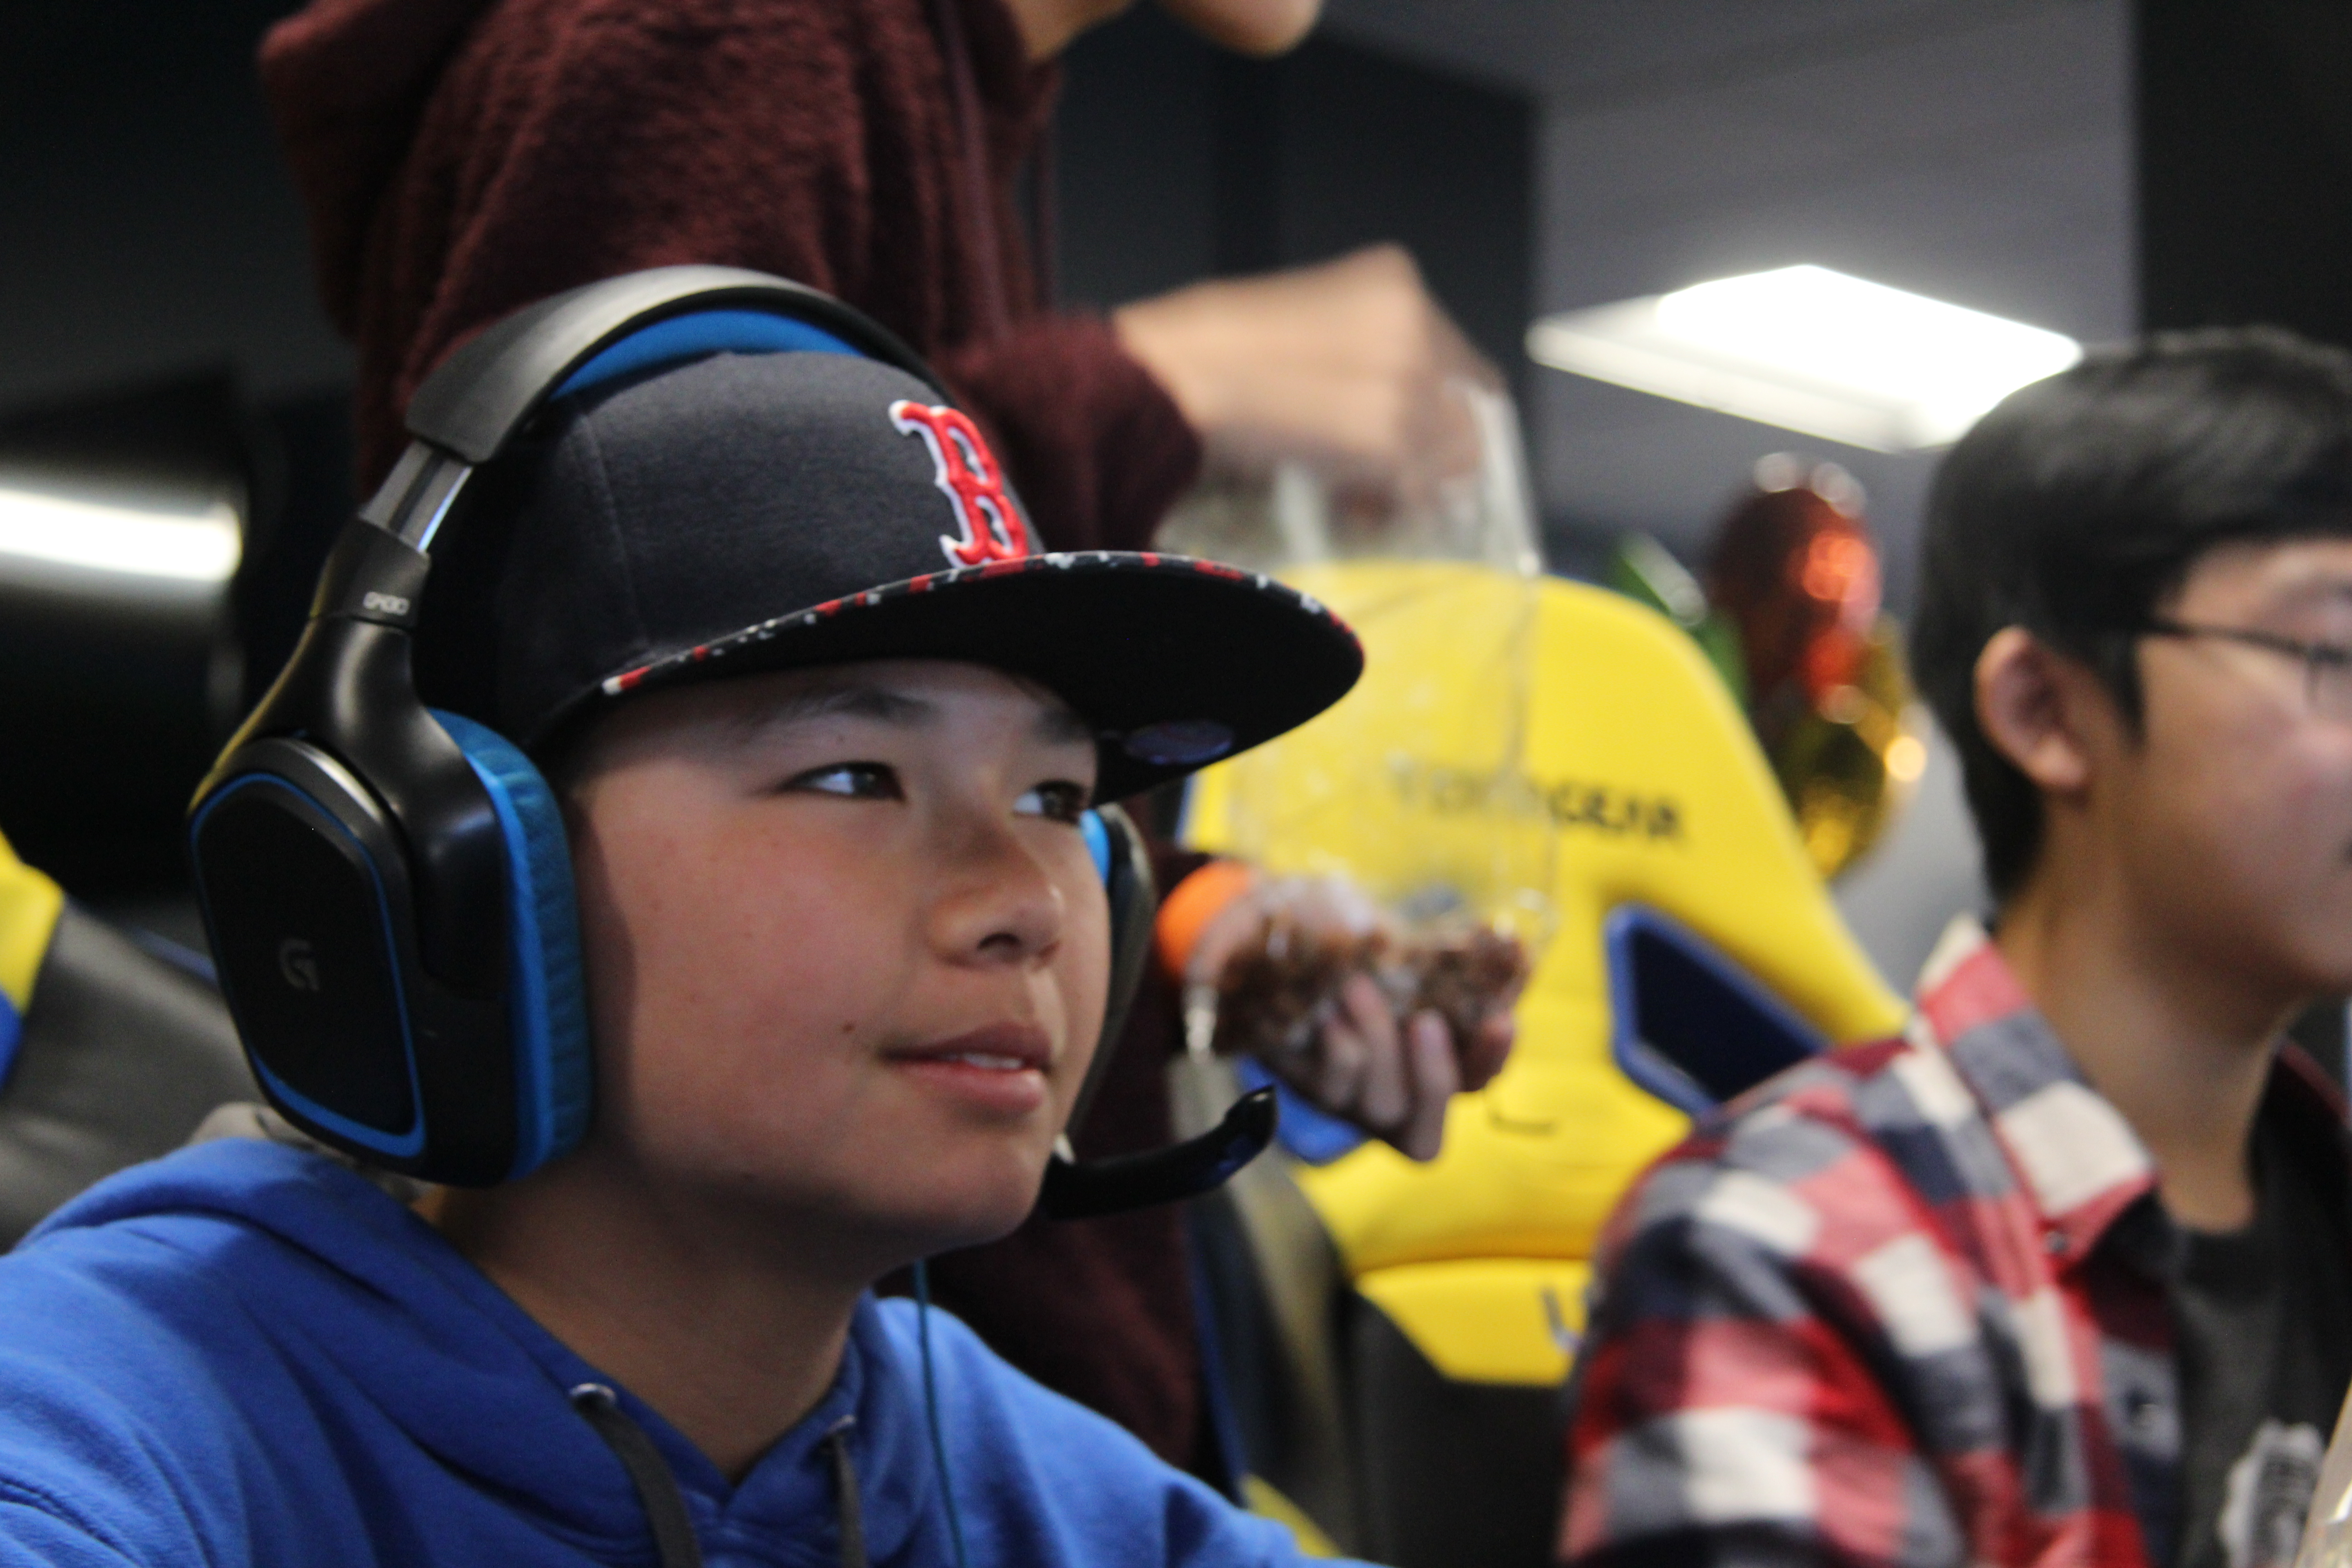 Students participating in freeplay at the UCI Esports Arena during the event.